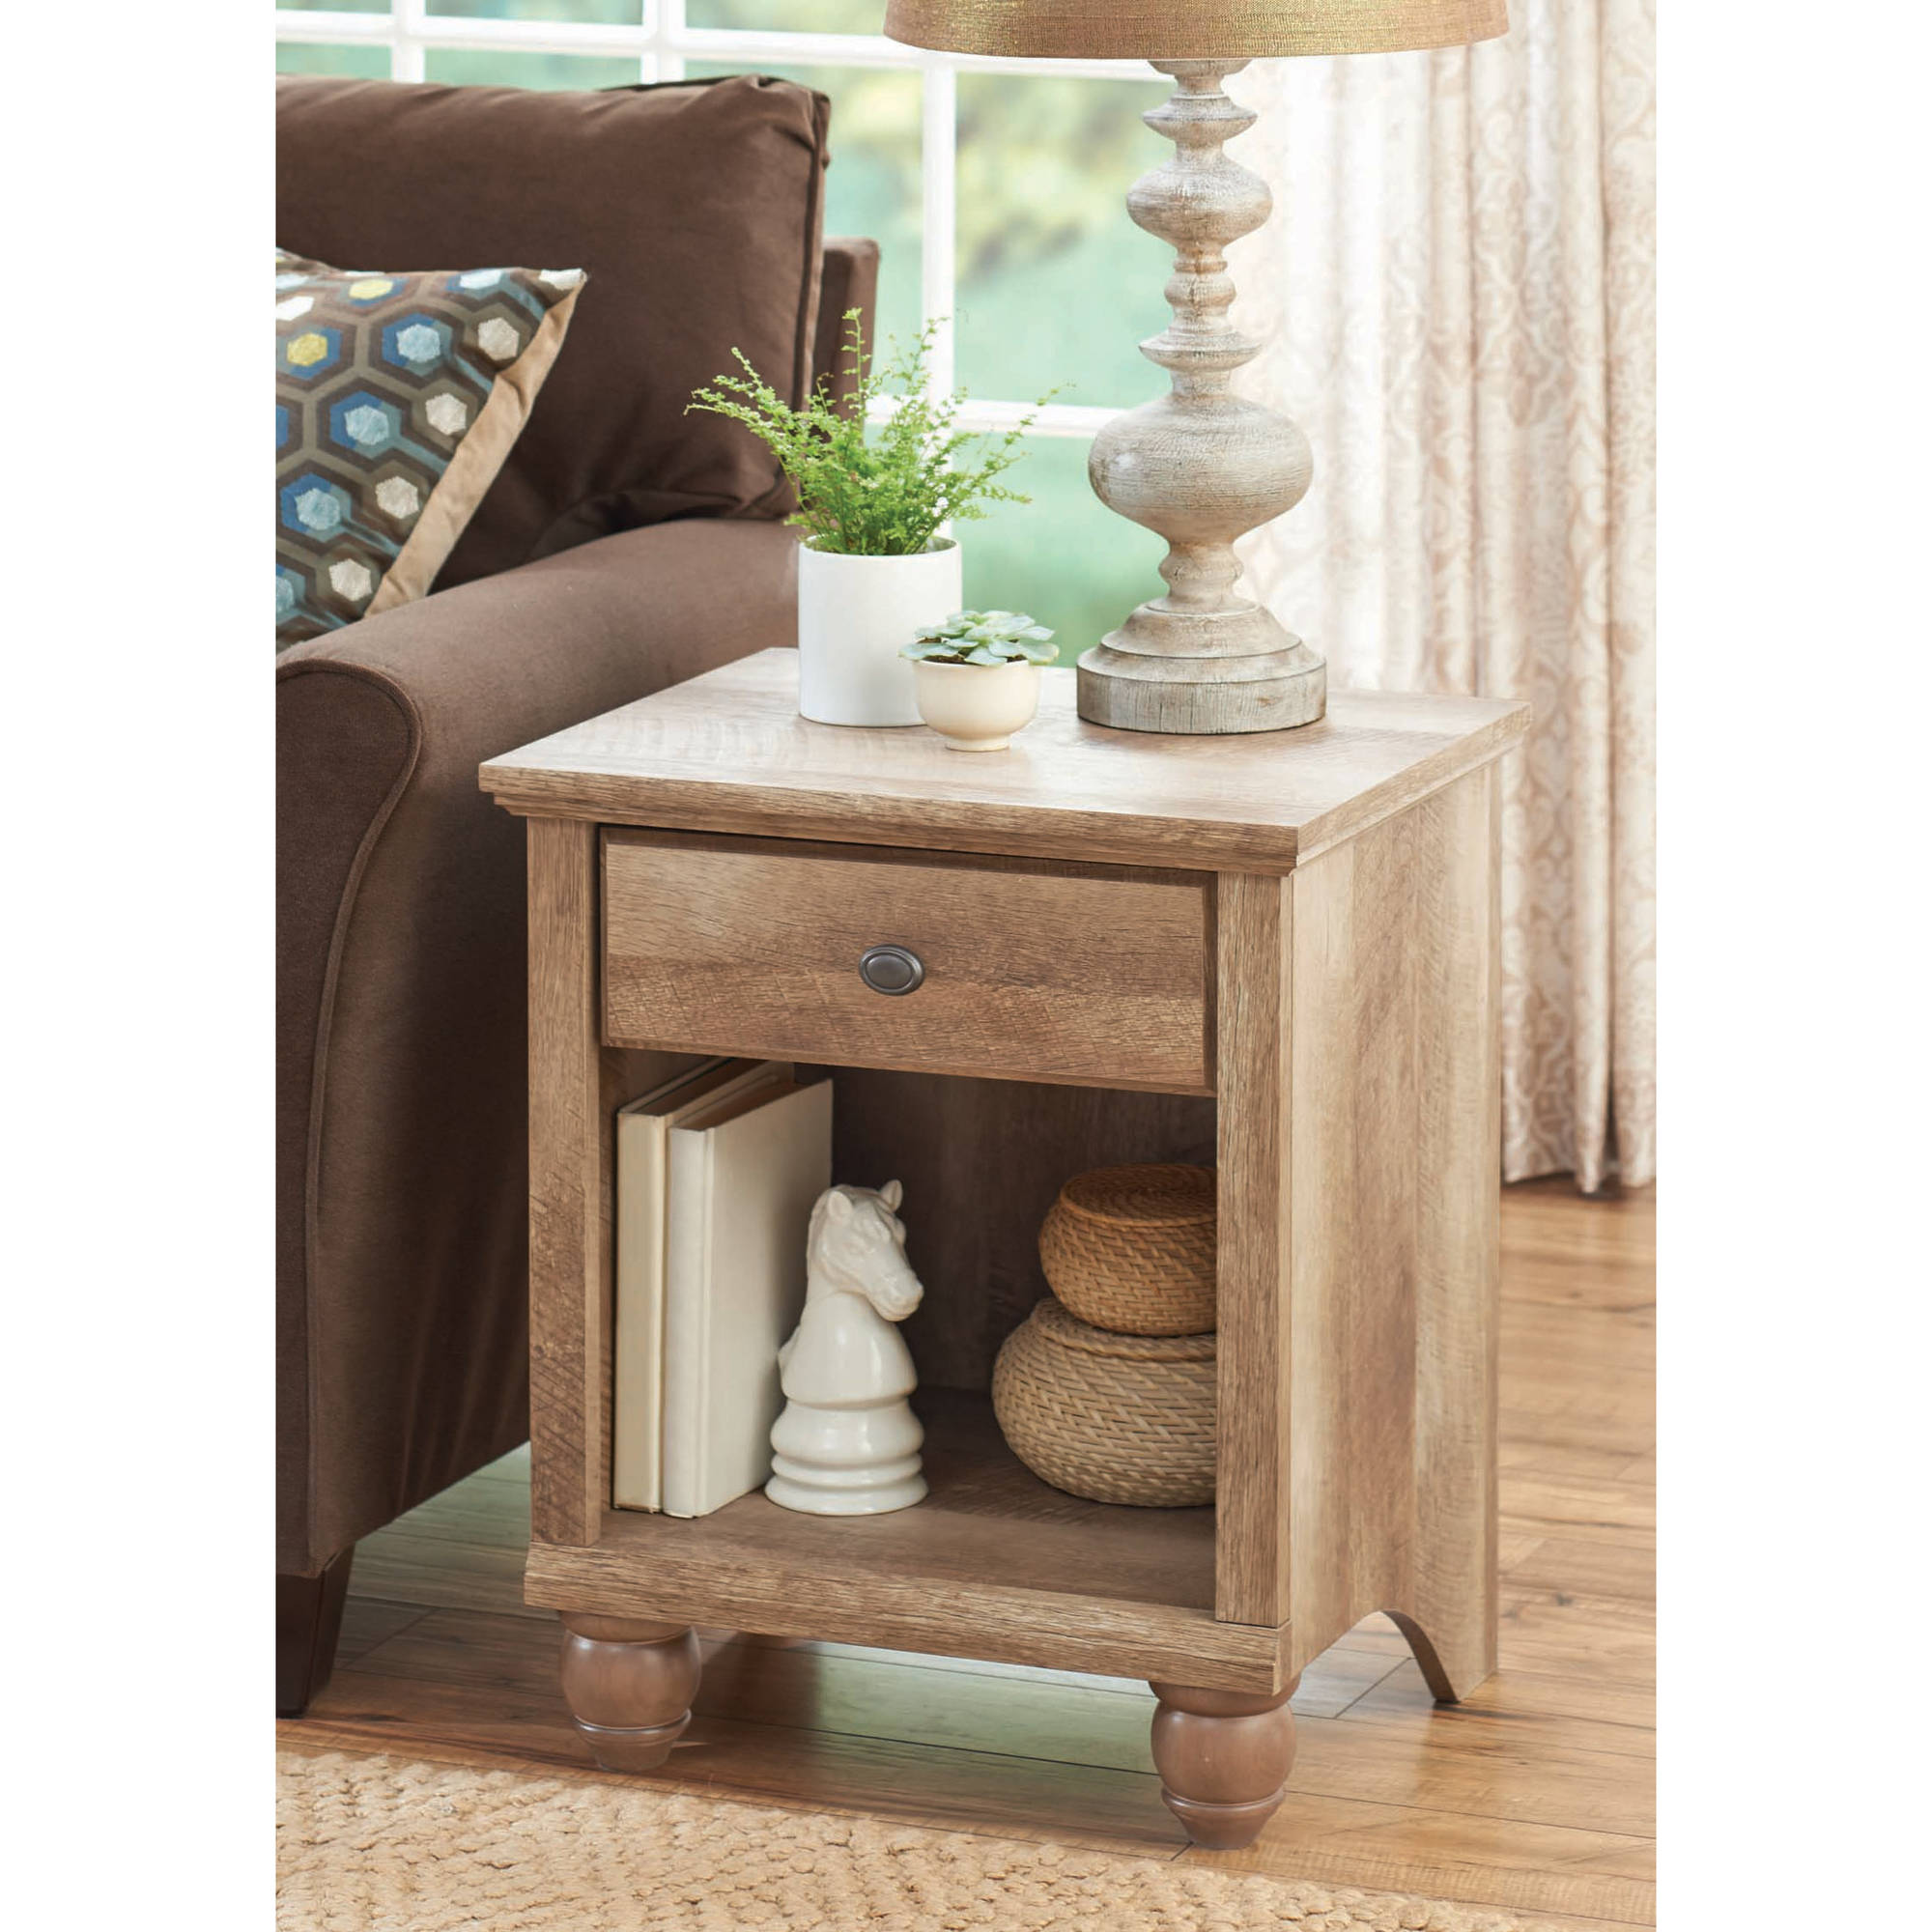 better homes gardens crossmill accent table weathered finish collections computer target west elm bliss sofa small telephone stand drum living room storage cabinets with doors